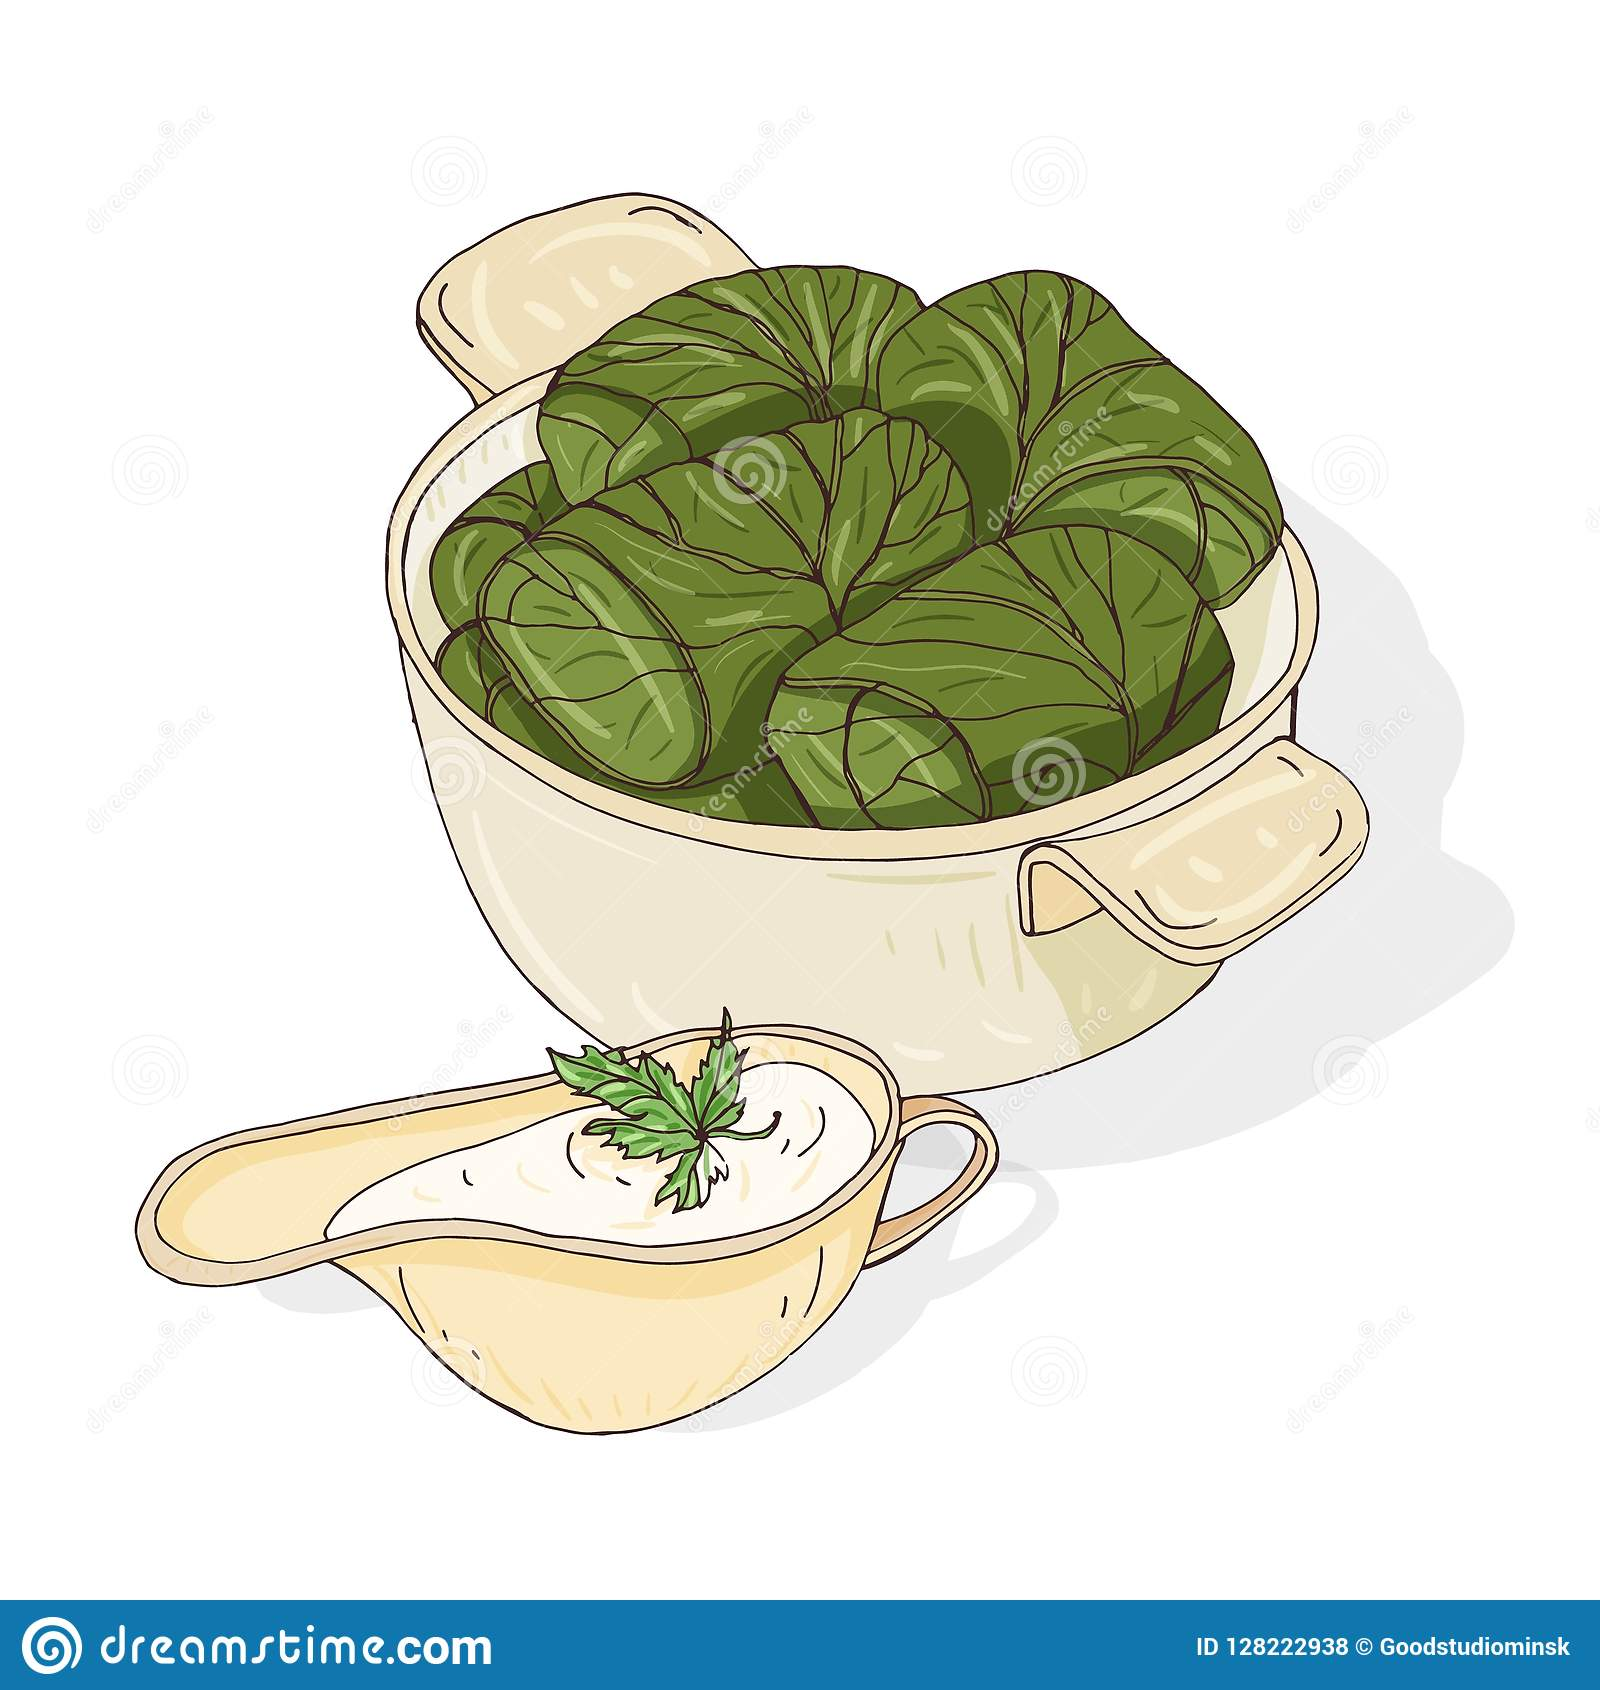 Drawing Of Dolma In Bowl And Sauce In Gravy Boat Tasty Georgian Meal Made Of Grape Leaves Stuffed With Minced Meat Stock Vector Illustration Of Dish Cooked 128222938